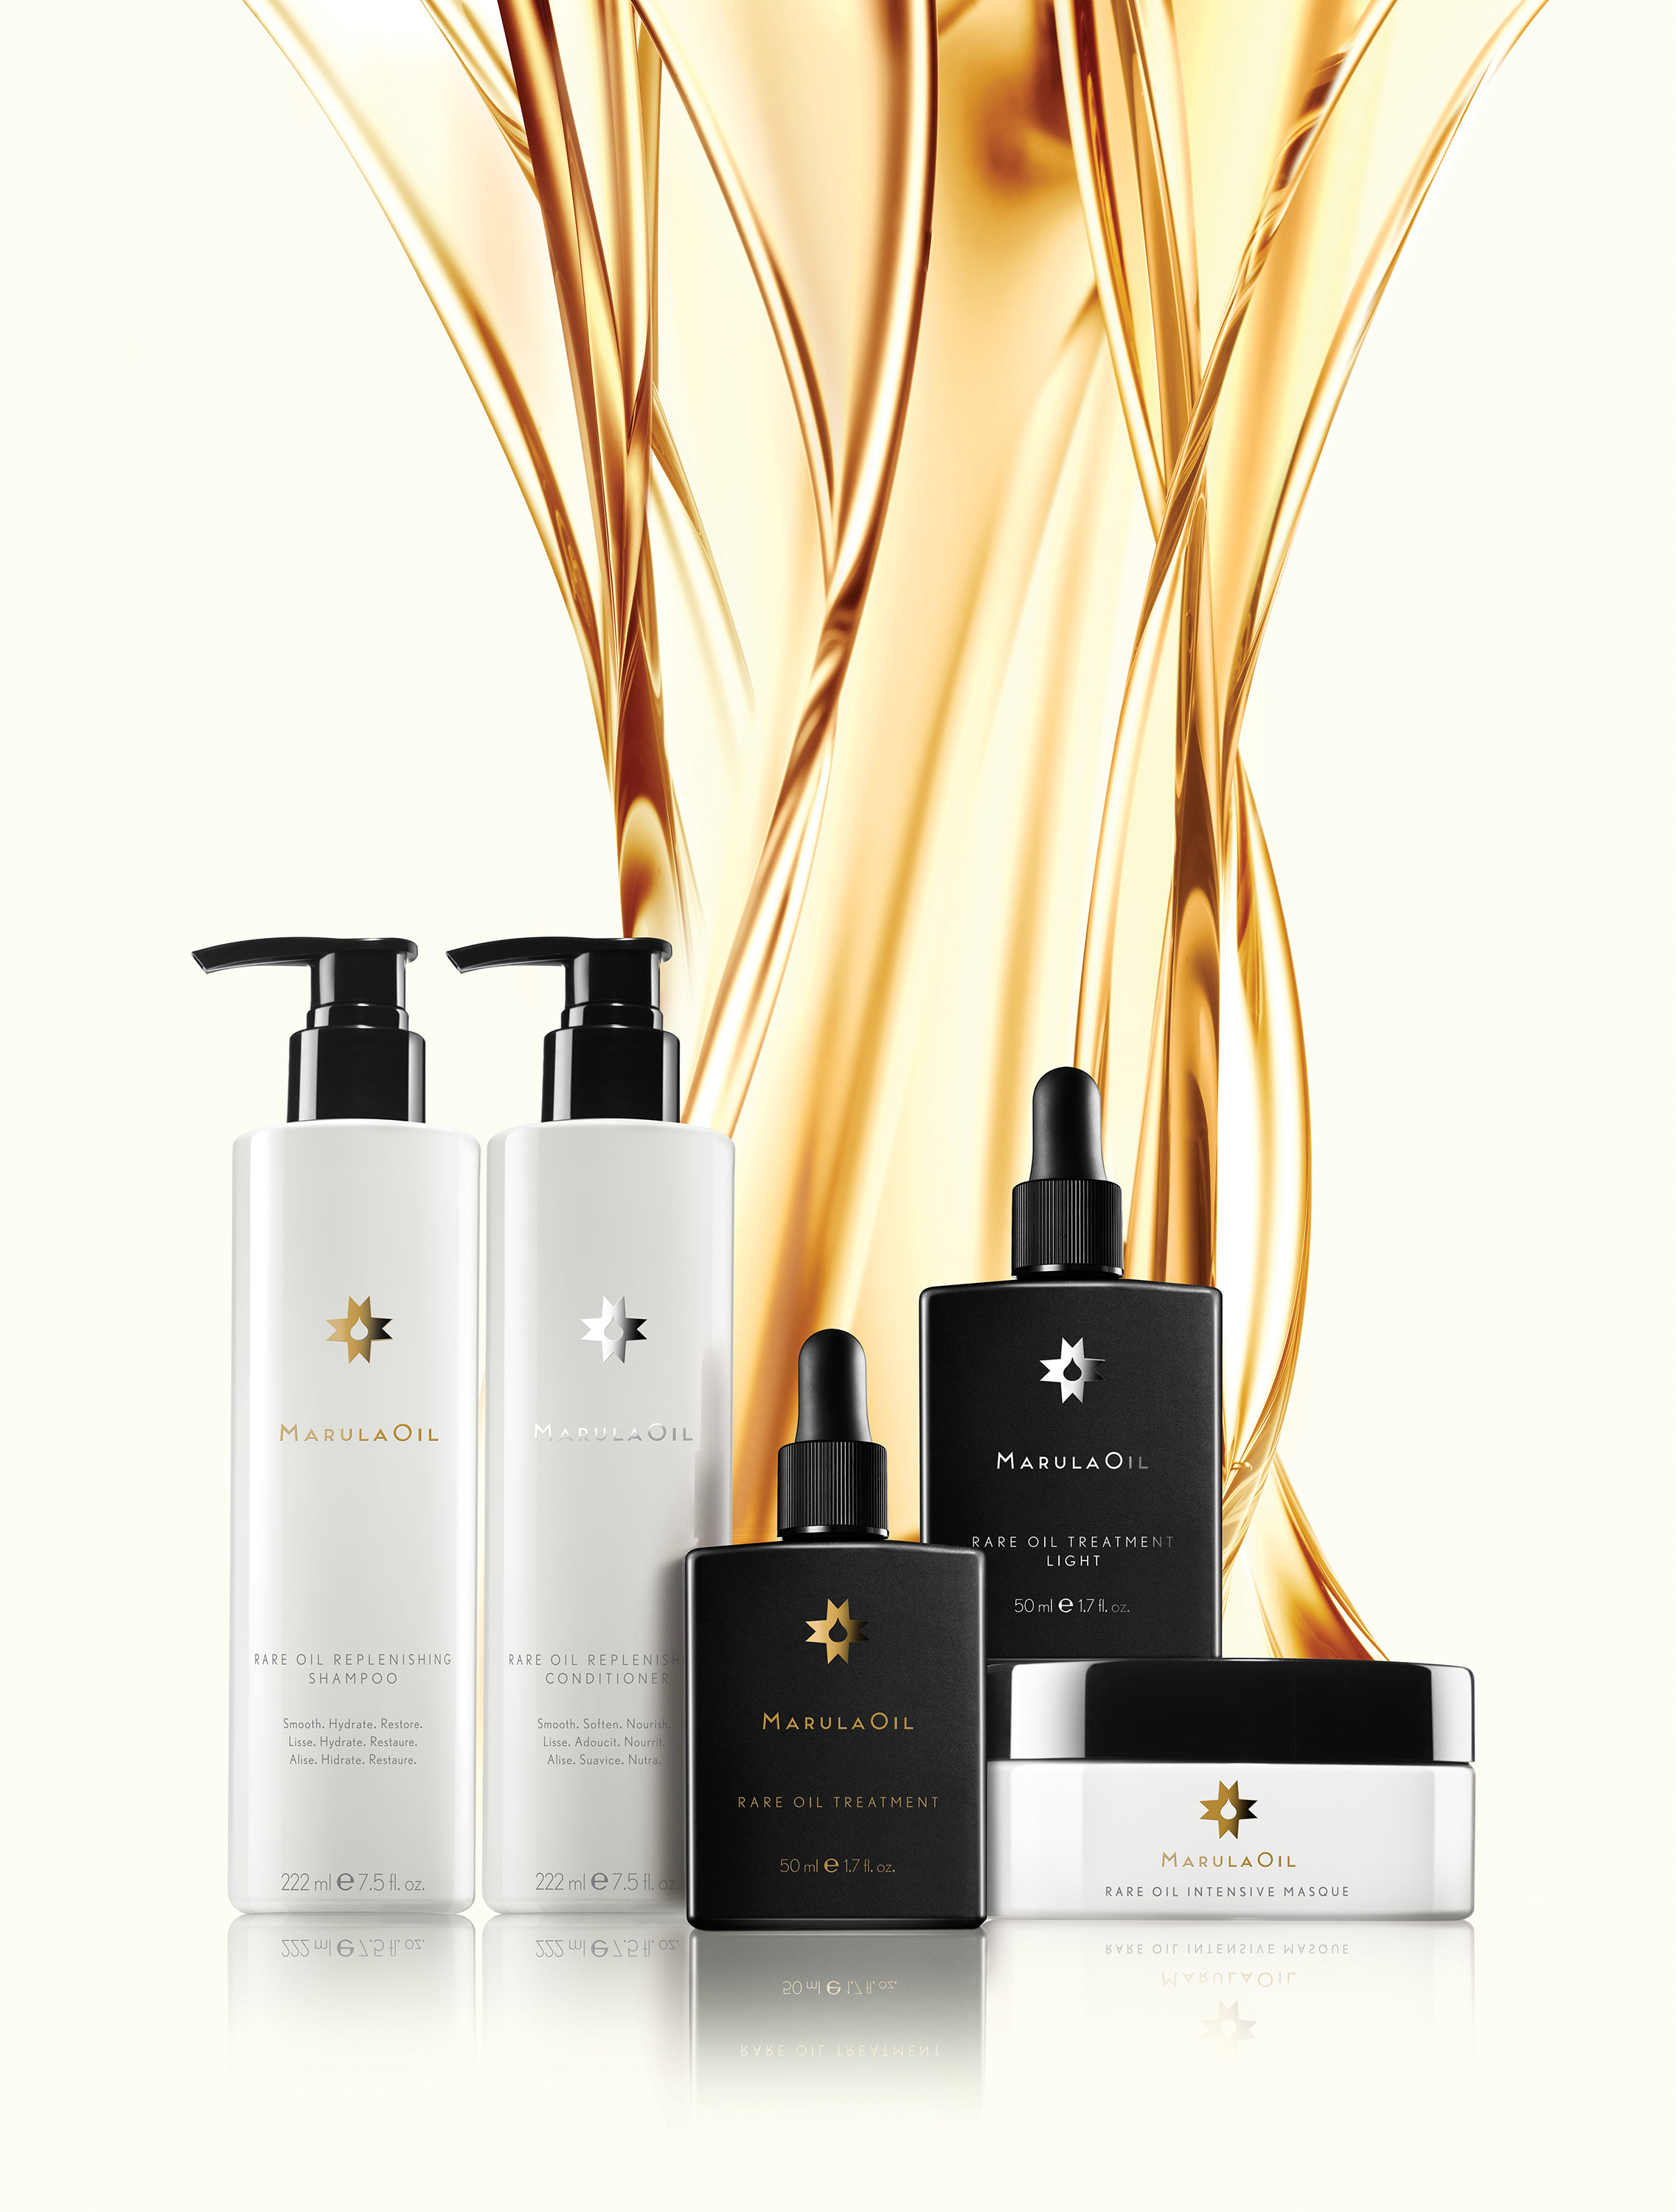 Introducing luxury hair care that harnesses the power of RARE, NATURAL MARULA OIL. Wild-harvested in Africa, the oil is COLD-PRESSED to preserve its superior quality and nutrients.